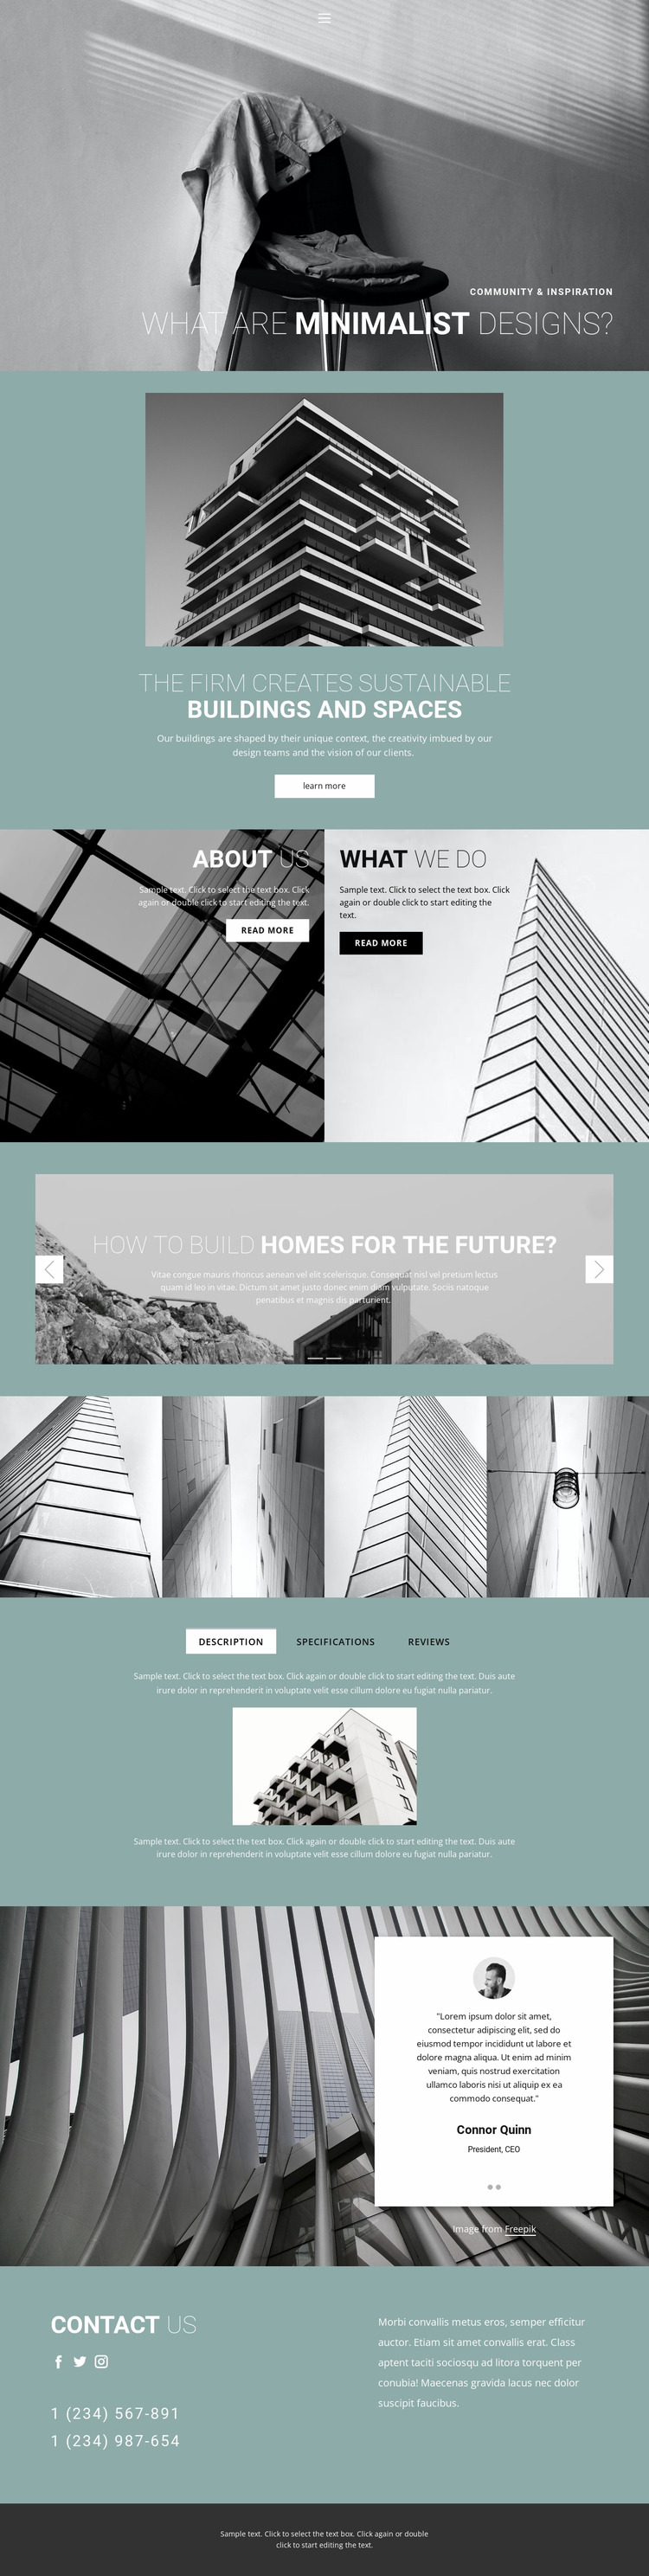 Perfect architecture ideas Html Website Builder